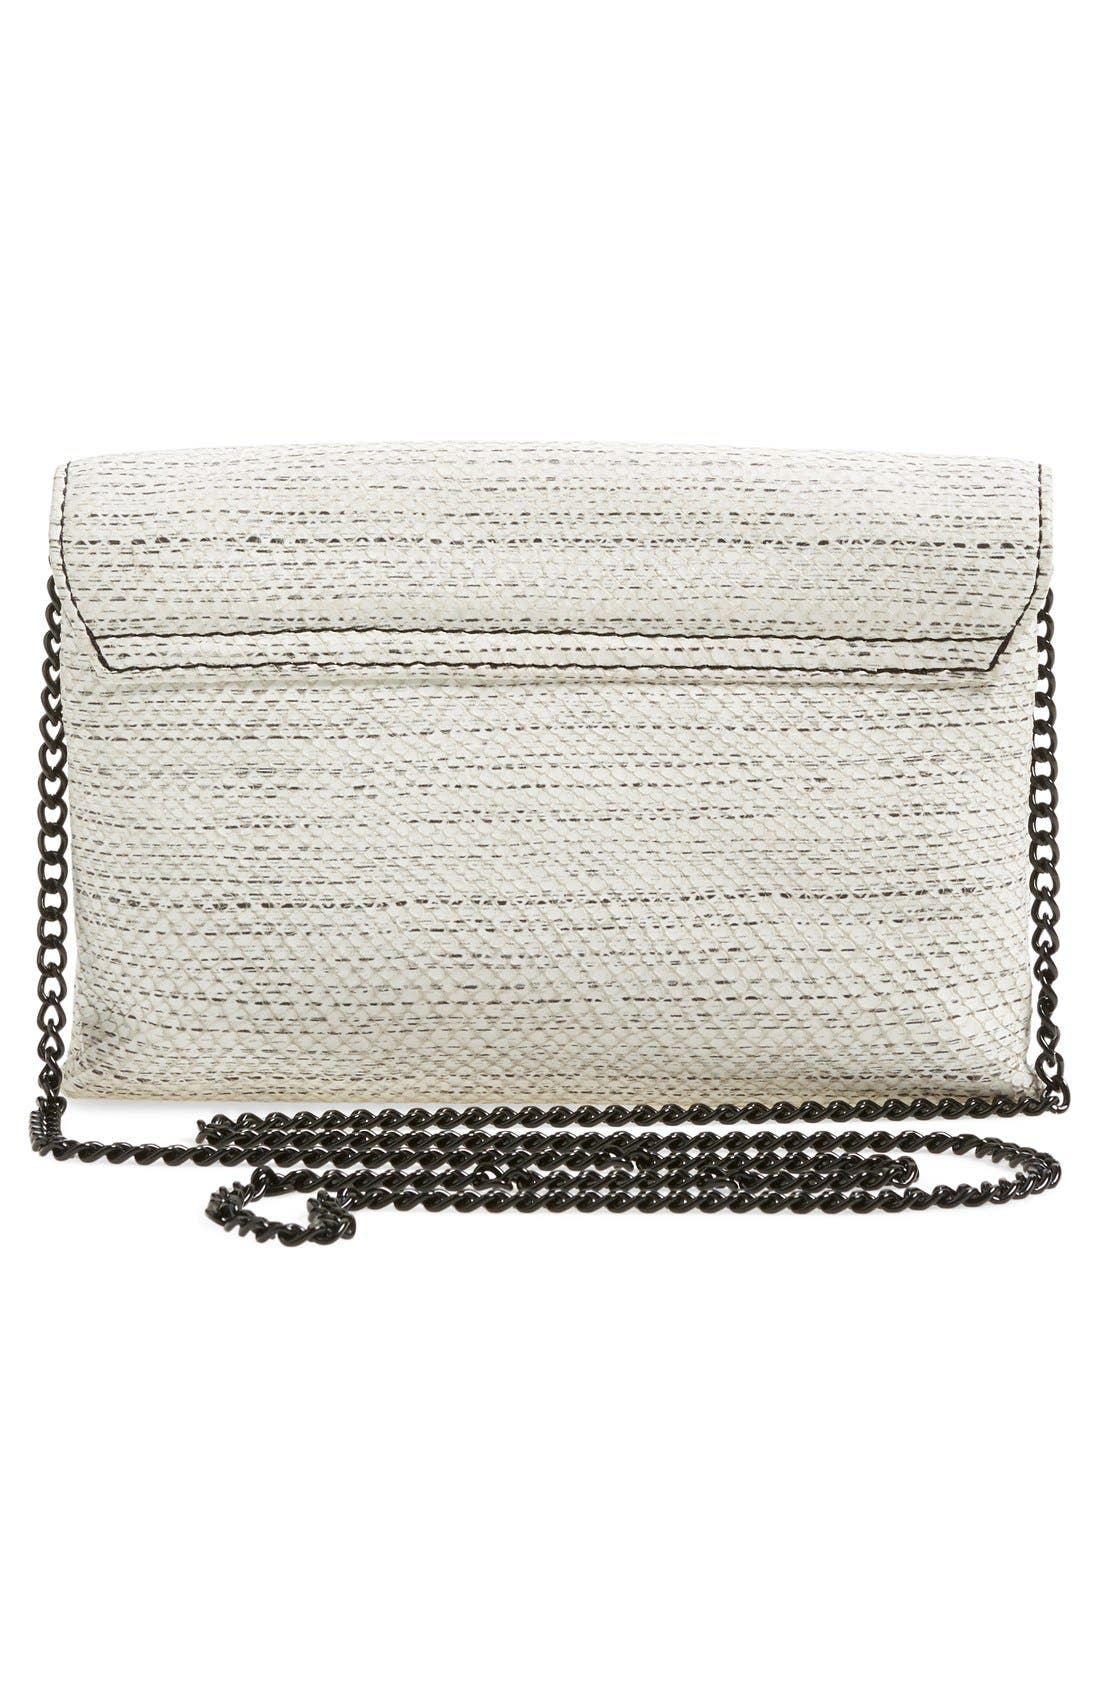 Alternate Image 3  - Loeffler Randall 'Junior Lock' Leather Envelope Clutch